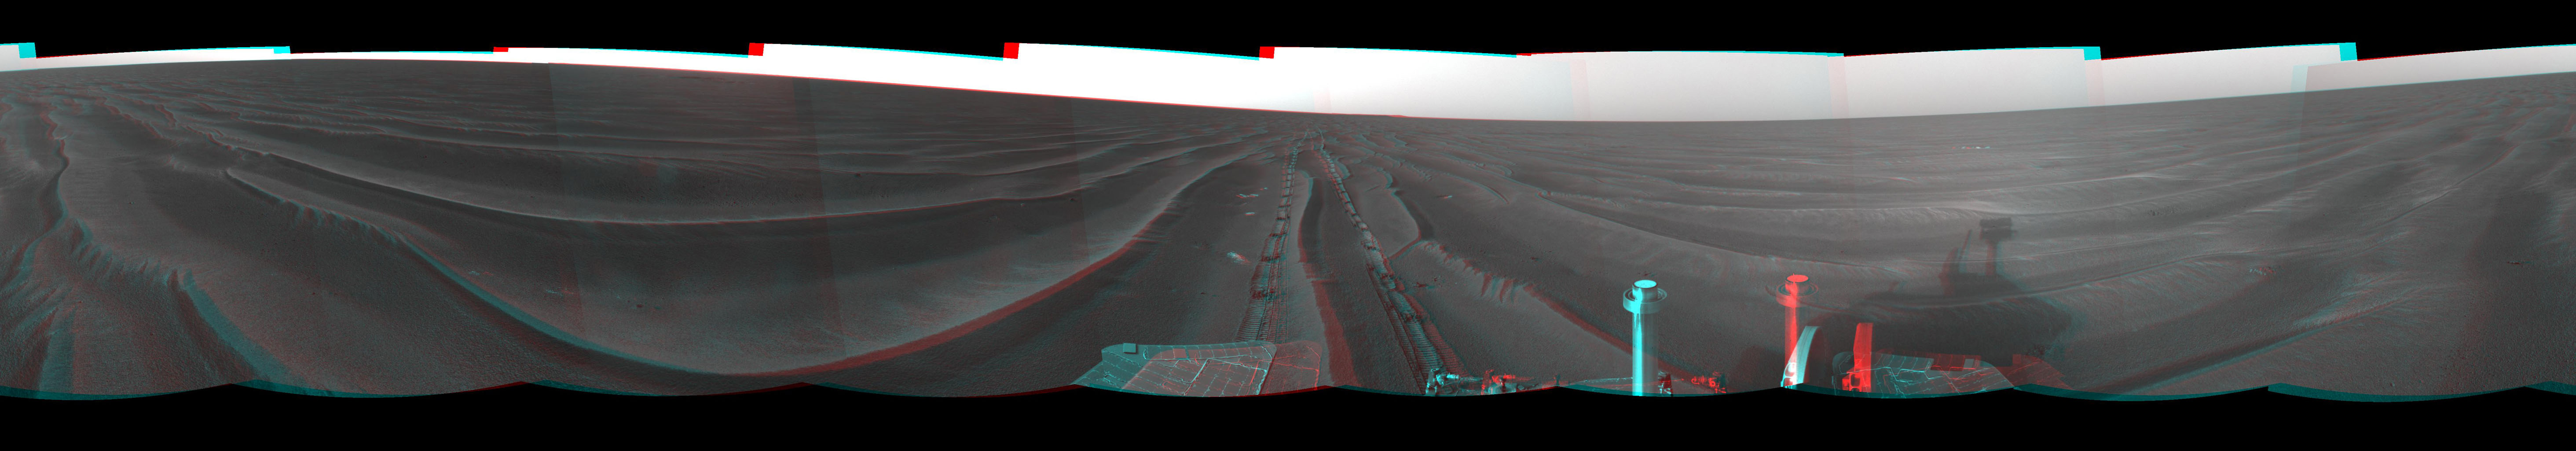 On Feb. 19, 2005, NASA's Mars Exploration Rover Opportunity set a one-day distance record for martian driving; Opportunity rolled 177.5 meters (582 feet) across the plain of Meridiani. 3-D glasses are necessary to view this image.